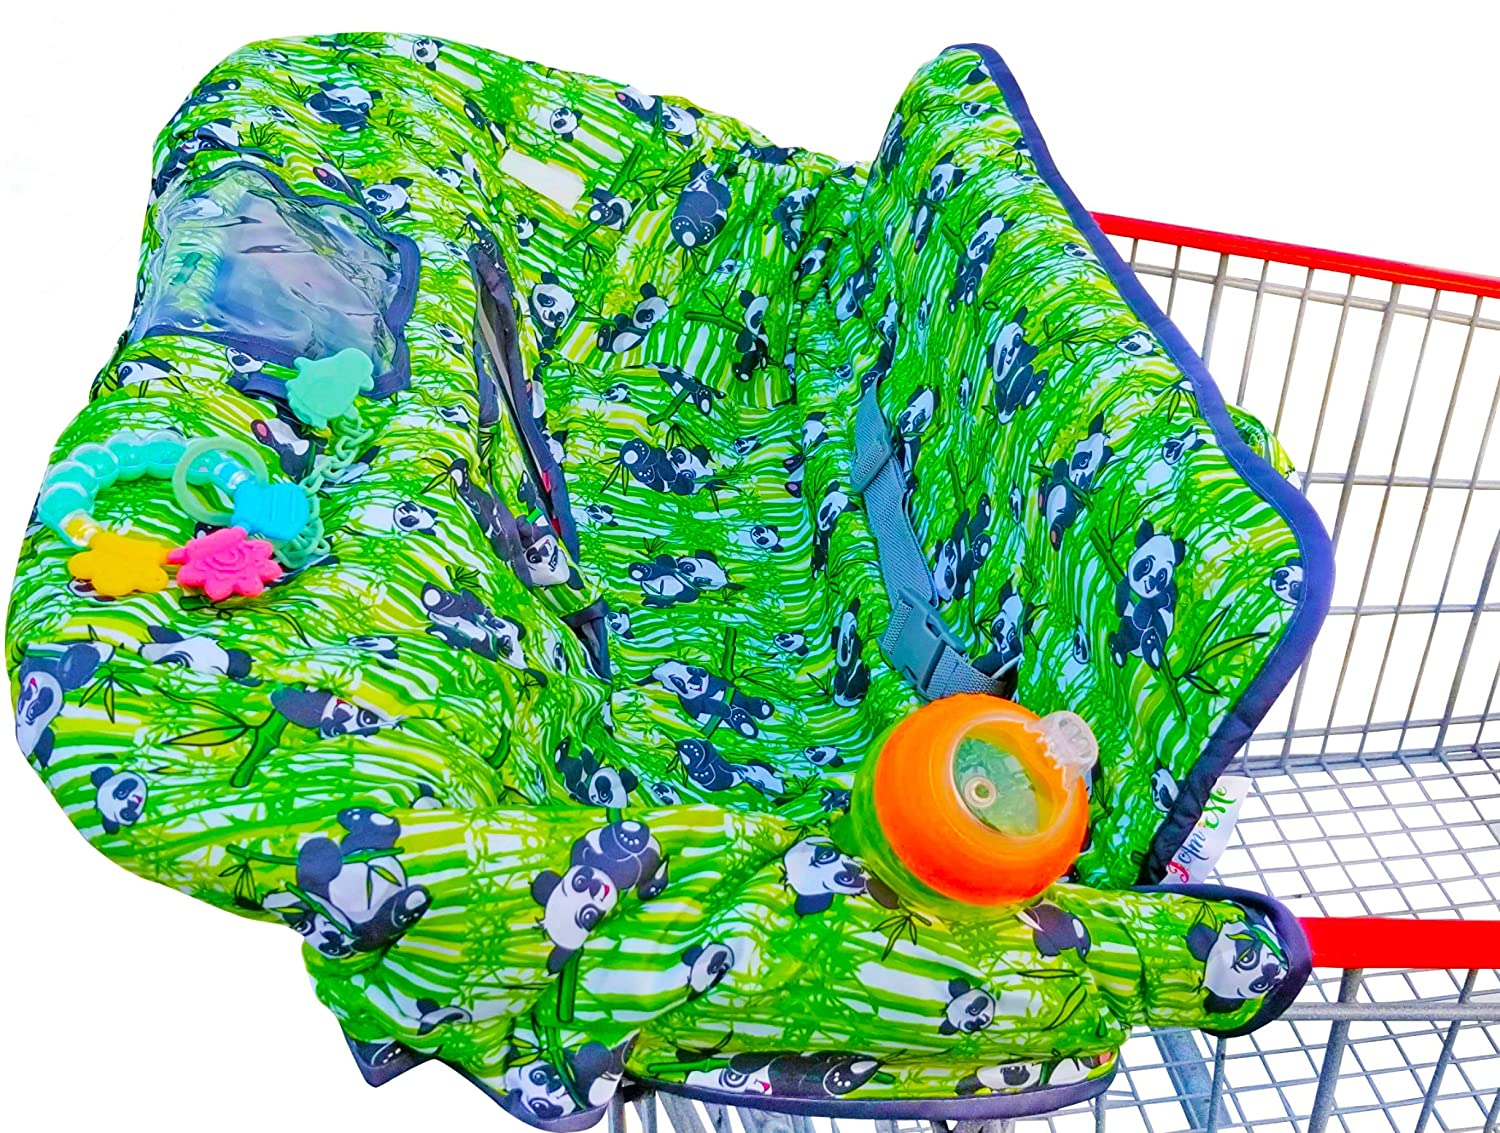 Extra Large Panda Shopping Cart Cover for Babies - 2 in 1 High Chair and Shopping cart Cover with Safety Harness - New and Updated Design